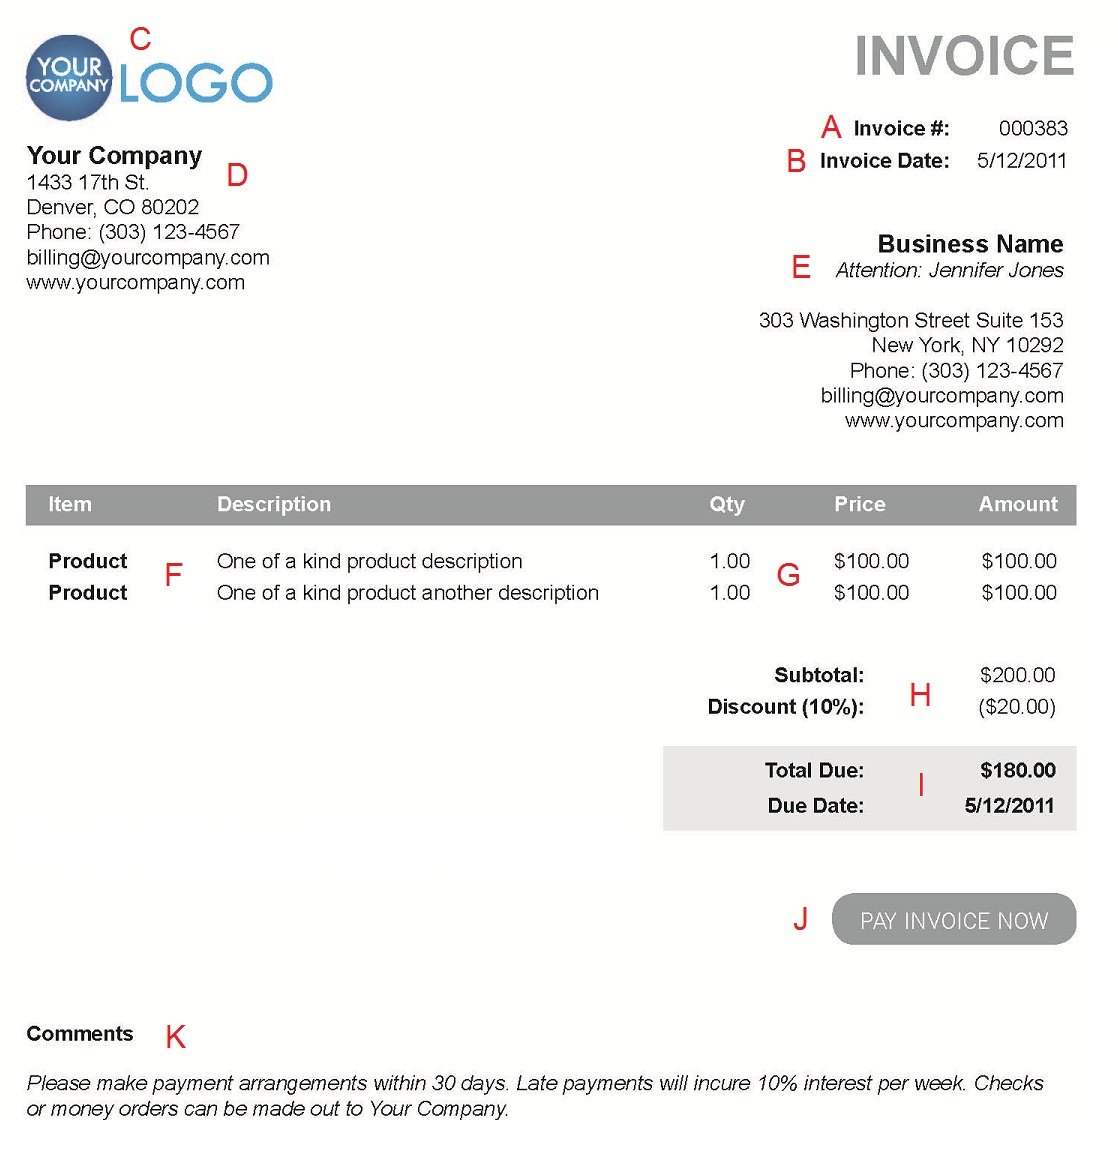 Coolmathgamesus  Inspiring The  Different Sections Of An Electronic Payment Invoice With Handsome A  With Breathtaking Confirm The Receipt Of This Email Also Best Receipt Tracking App In Addition Certified Mail Return Receipt Tracking And Receipt Catcher As Well As Receipt Means Additionally Payment Receipt Sample From Paysimplecom With Coolmathgamesus  Handsome The  Different Sections Of An Electronic Payment Invoice With Breathtaking A  And Inspiring Confirm The Receipt Of This Email Also Best Receipt Tracking App In Addition Certified Mail Return Receipt Tracking From Paysimplecom